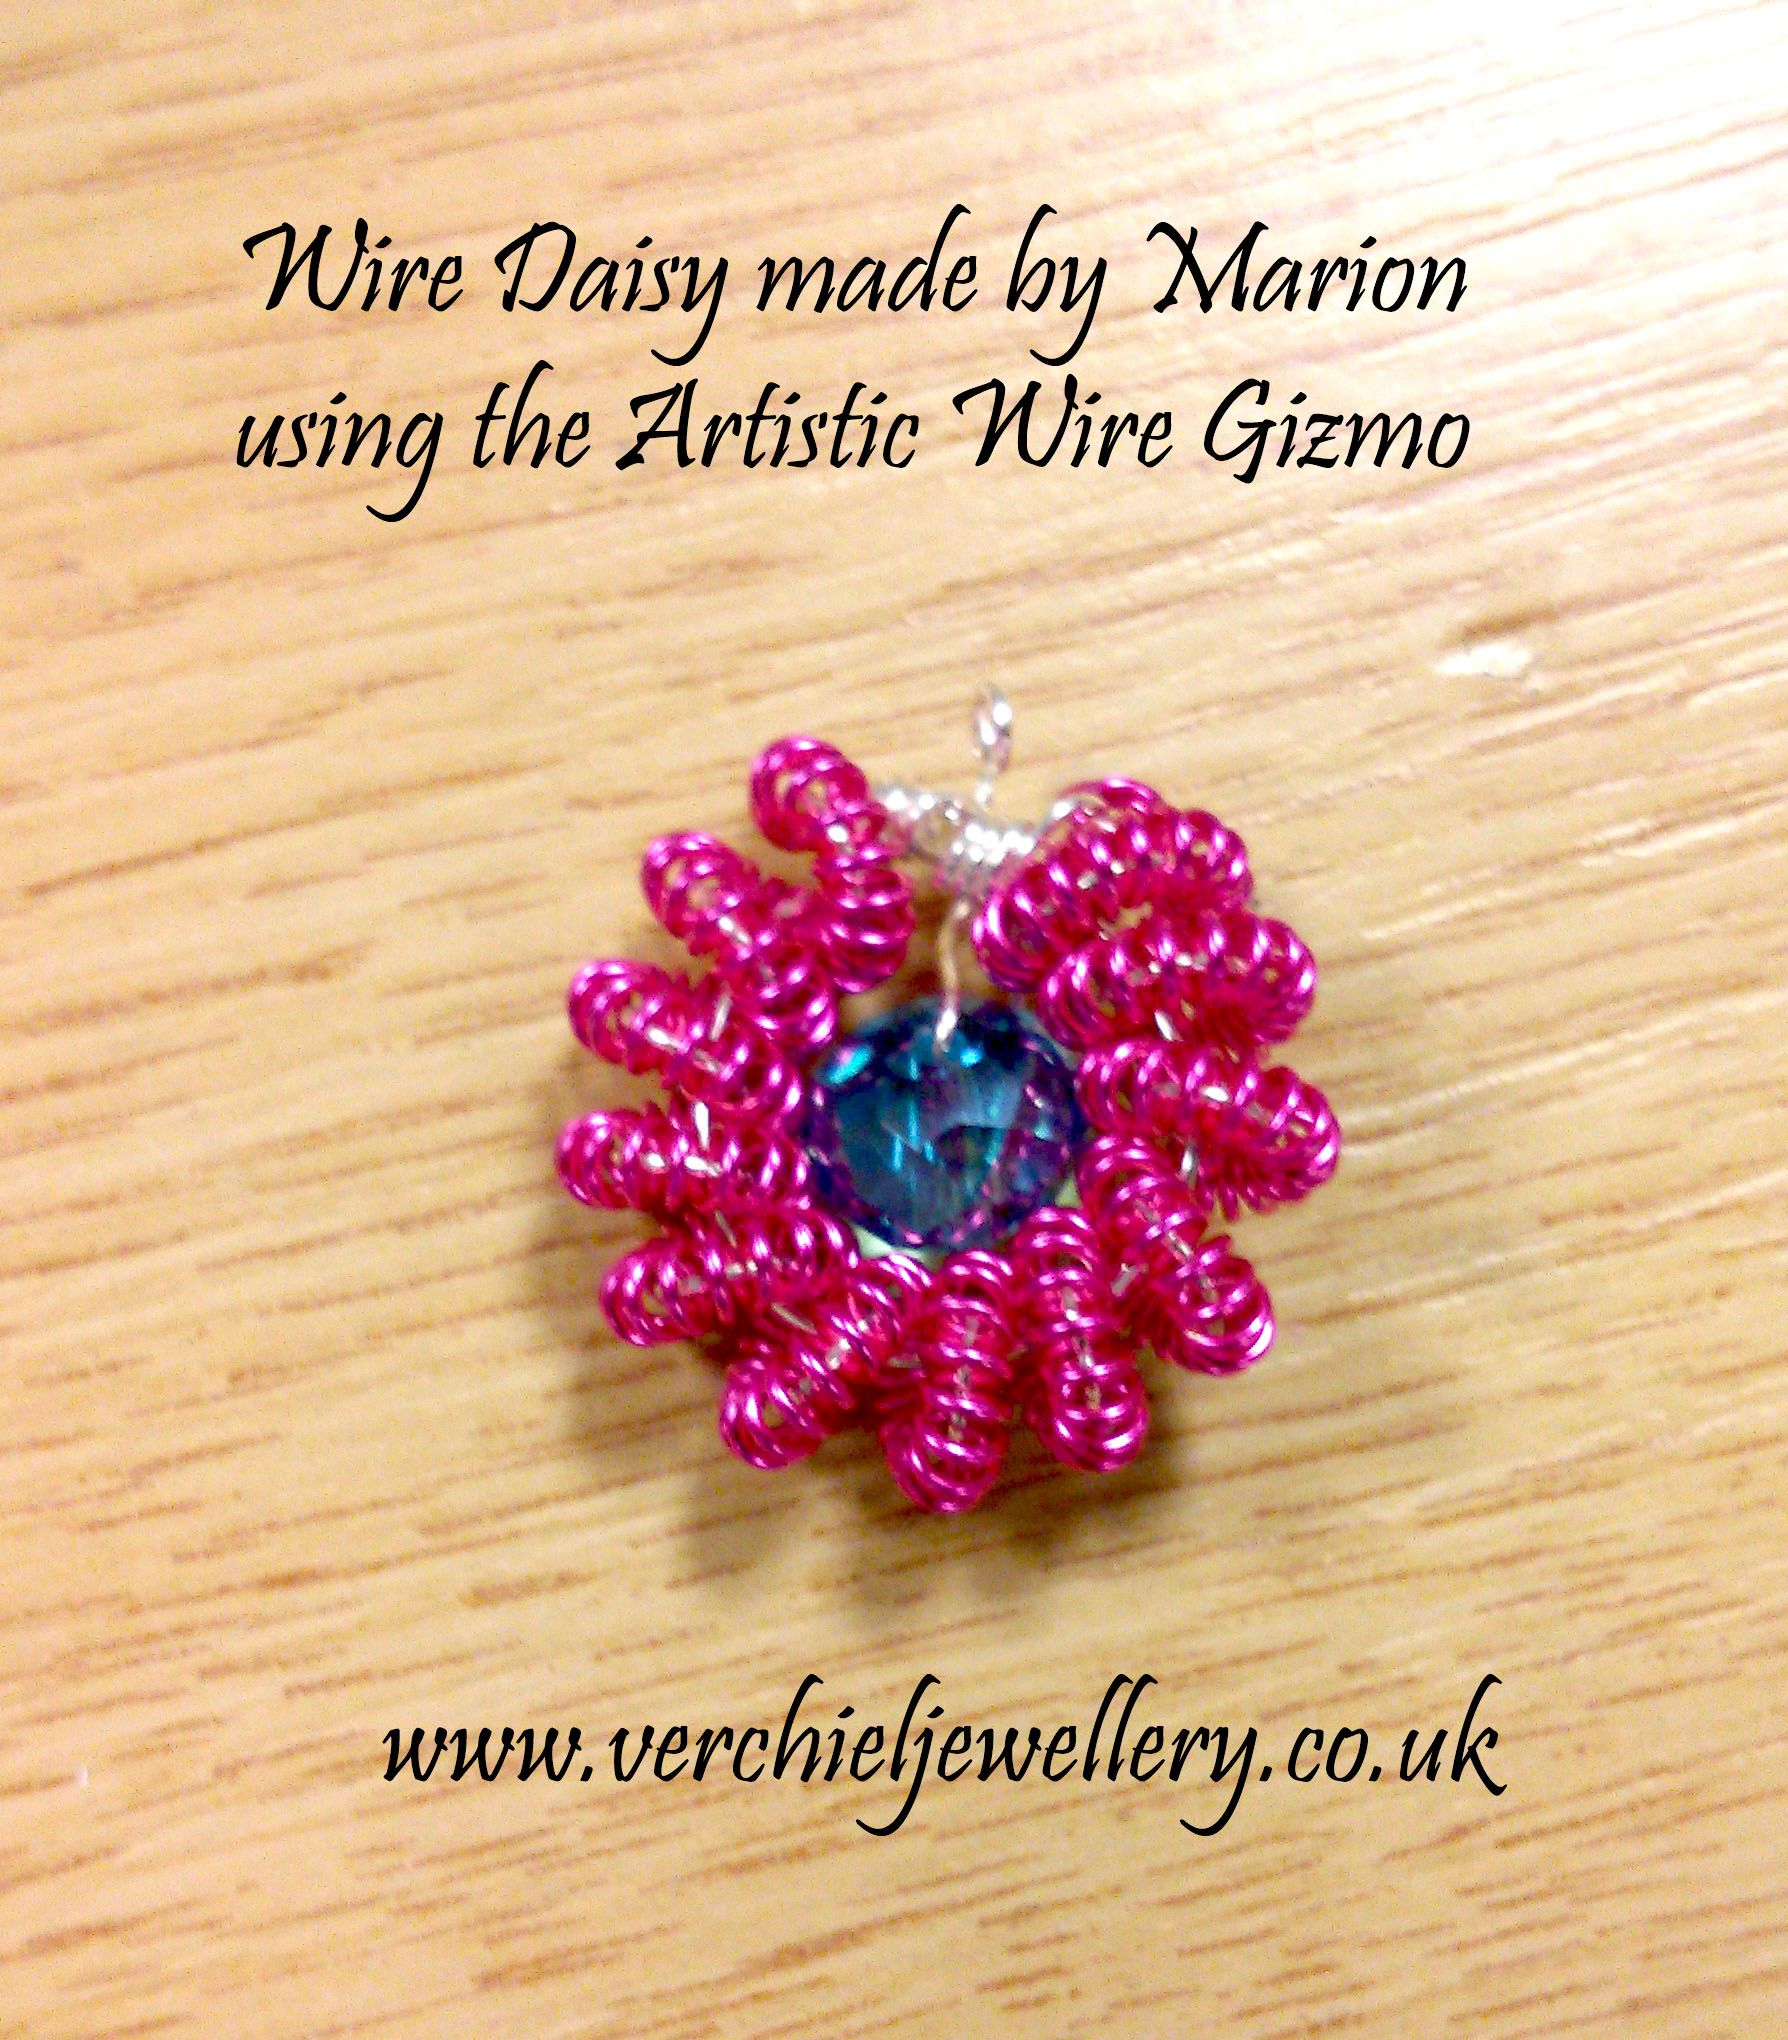 Daisy Bead Made By Marion Using The Artisitc Wire Gizmo Workshop How To A Run Verchiel Jewellery